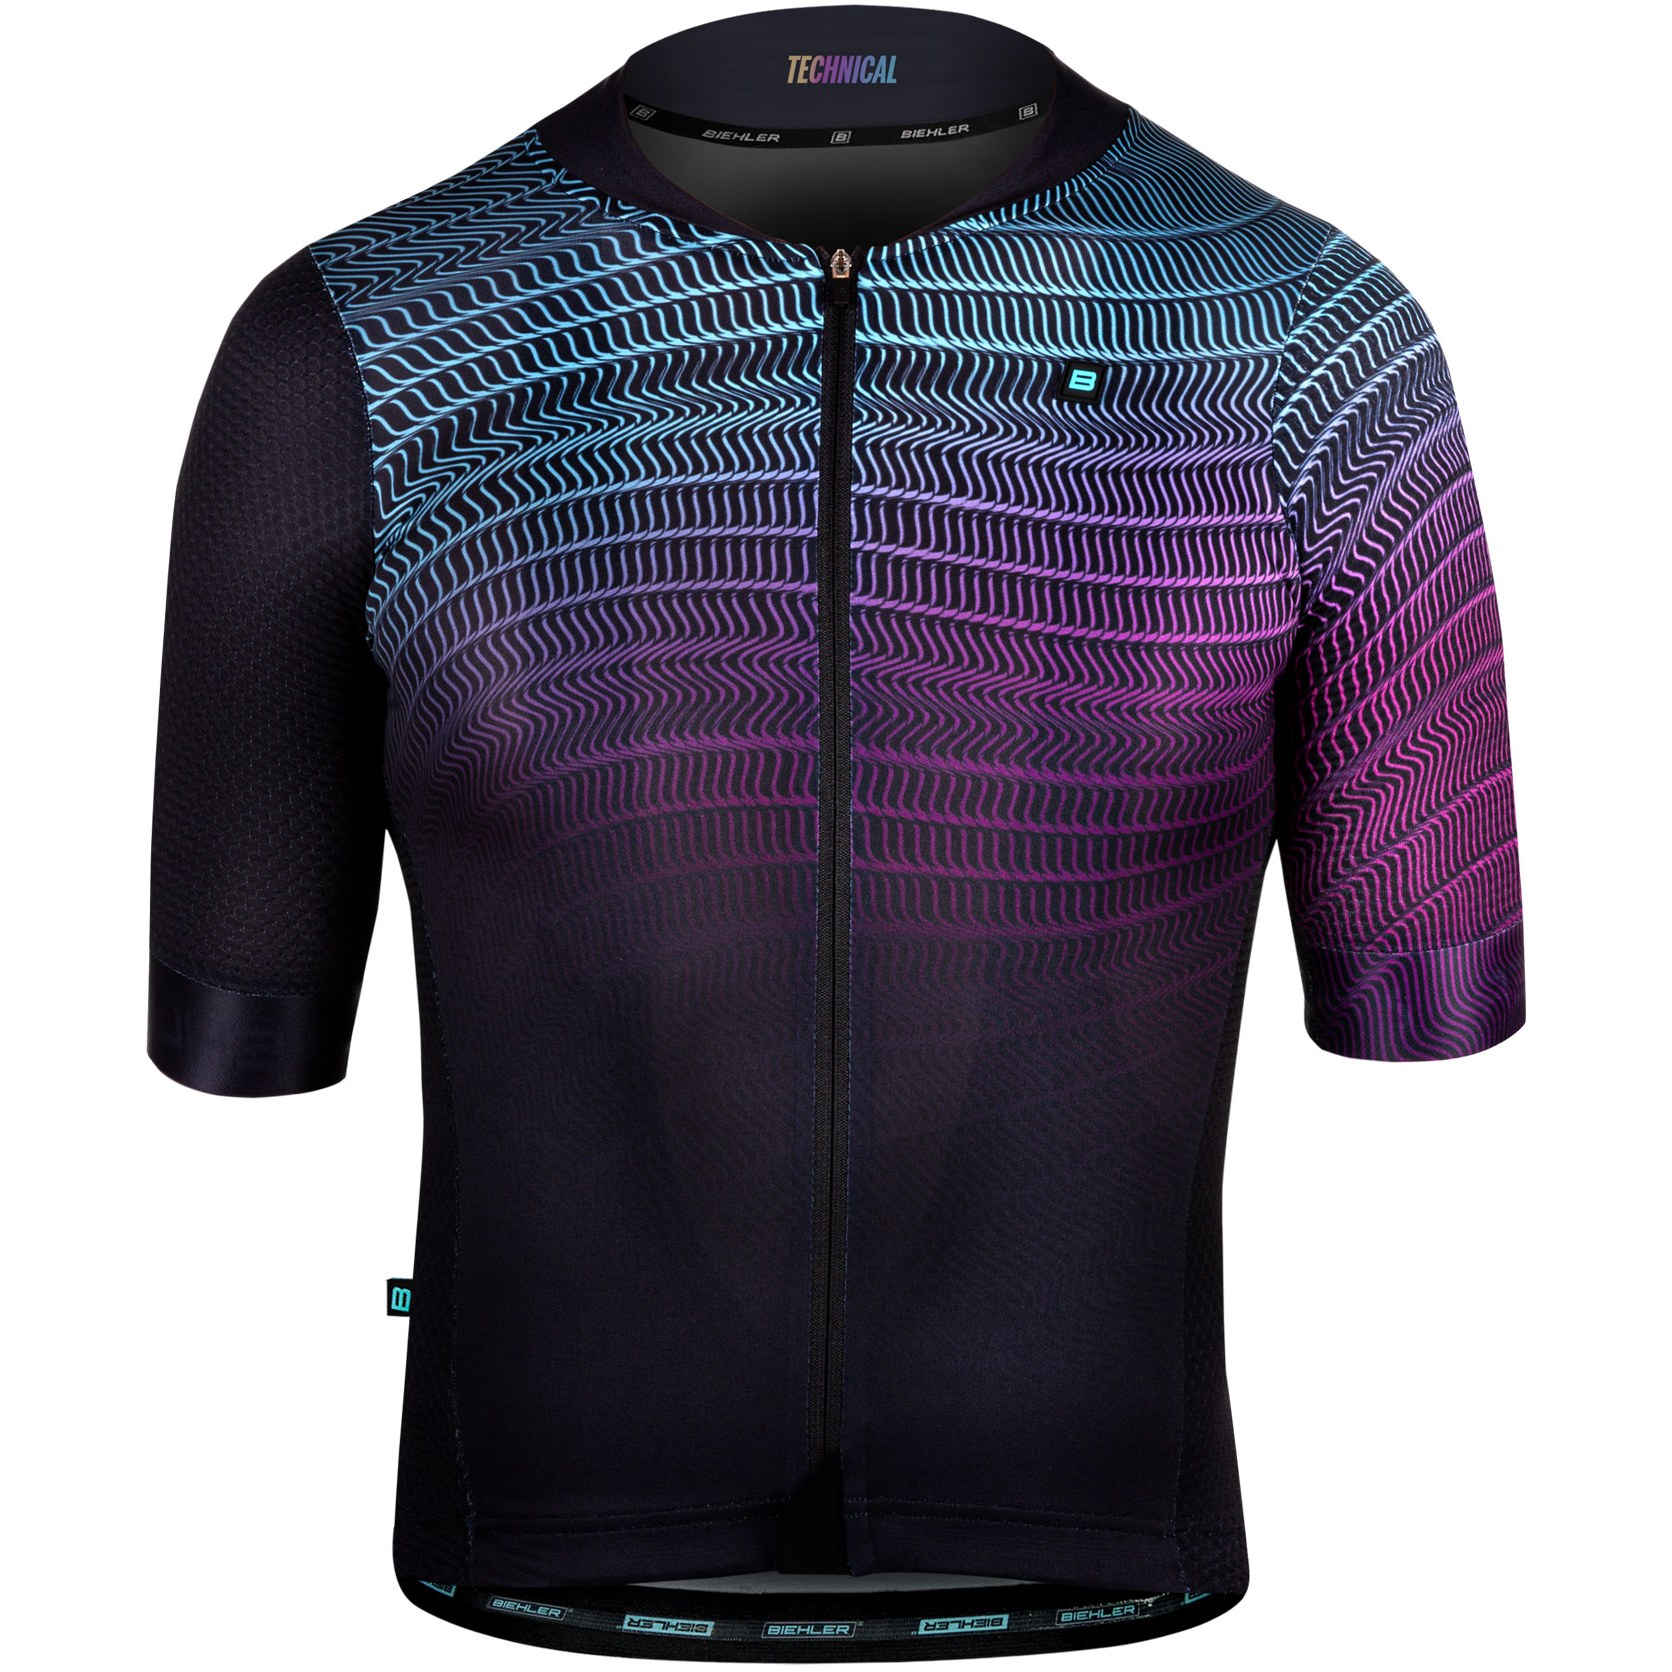 Biehler Technical Jersey - electric grid